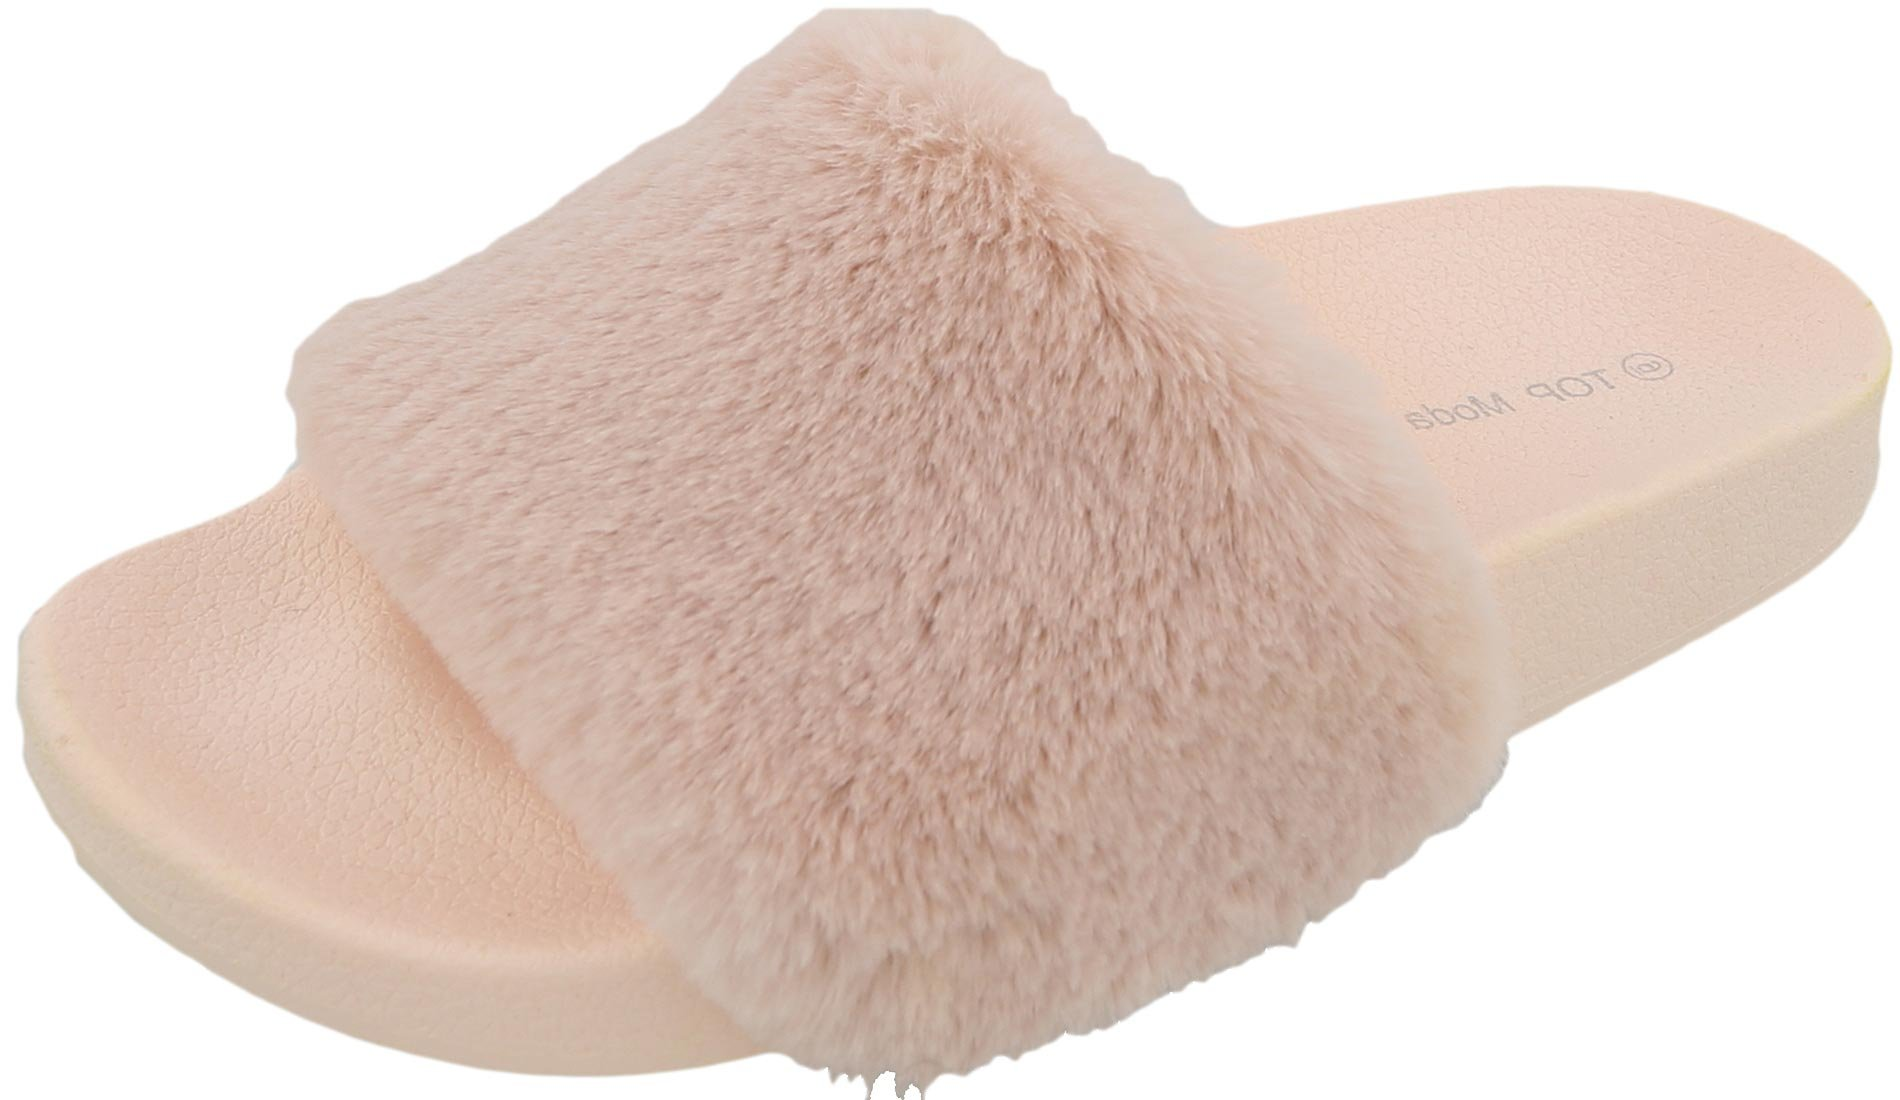 Top Moda Women's Faux Marabou Fur Slide Flip Flop Sandal (7 B(M) US, Blush)